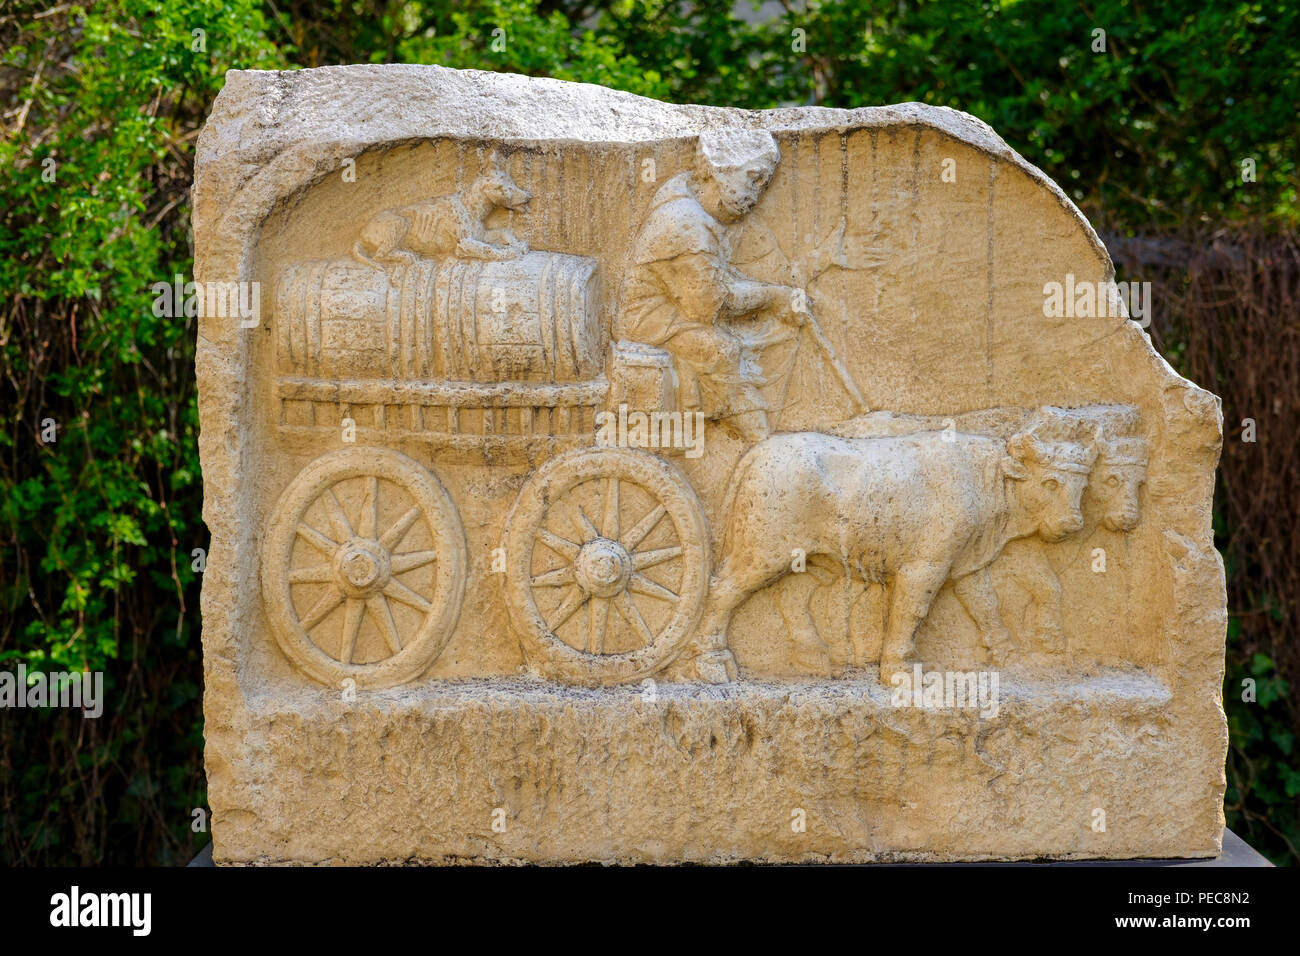 Roman relief of an ox cart, Augsburg, Swabia, Bavaria, Germany - Stock Image